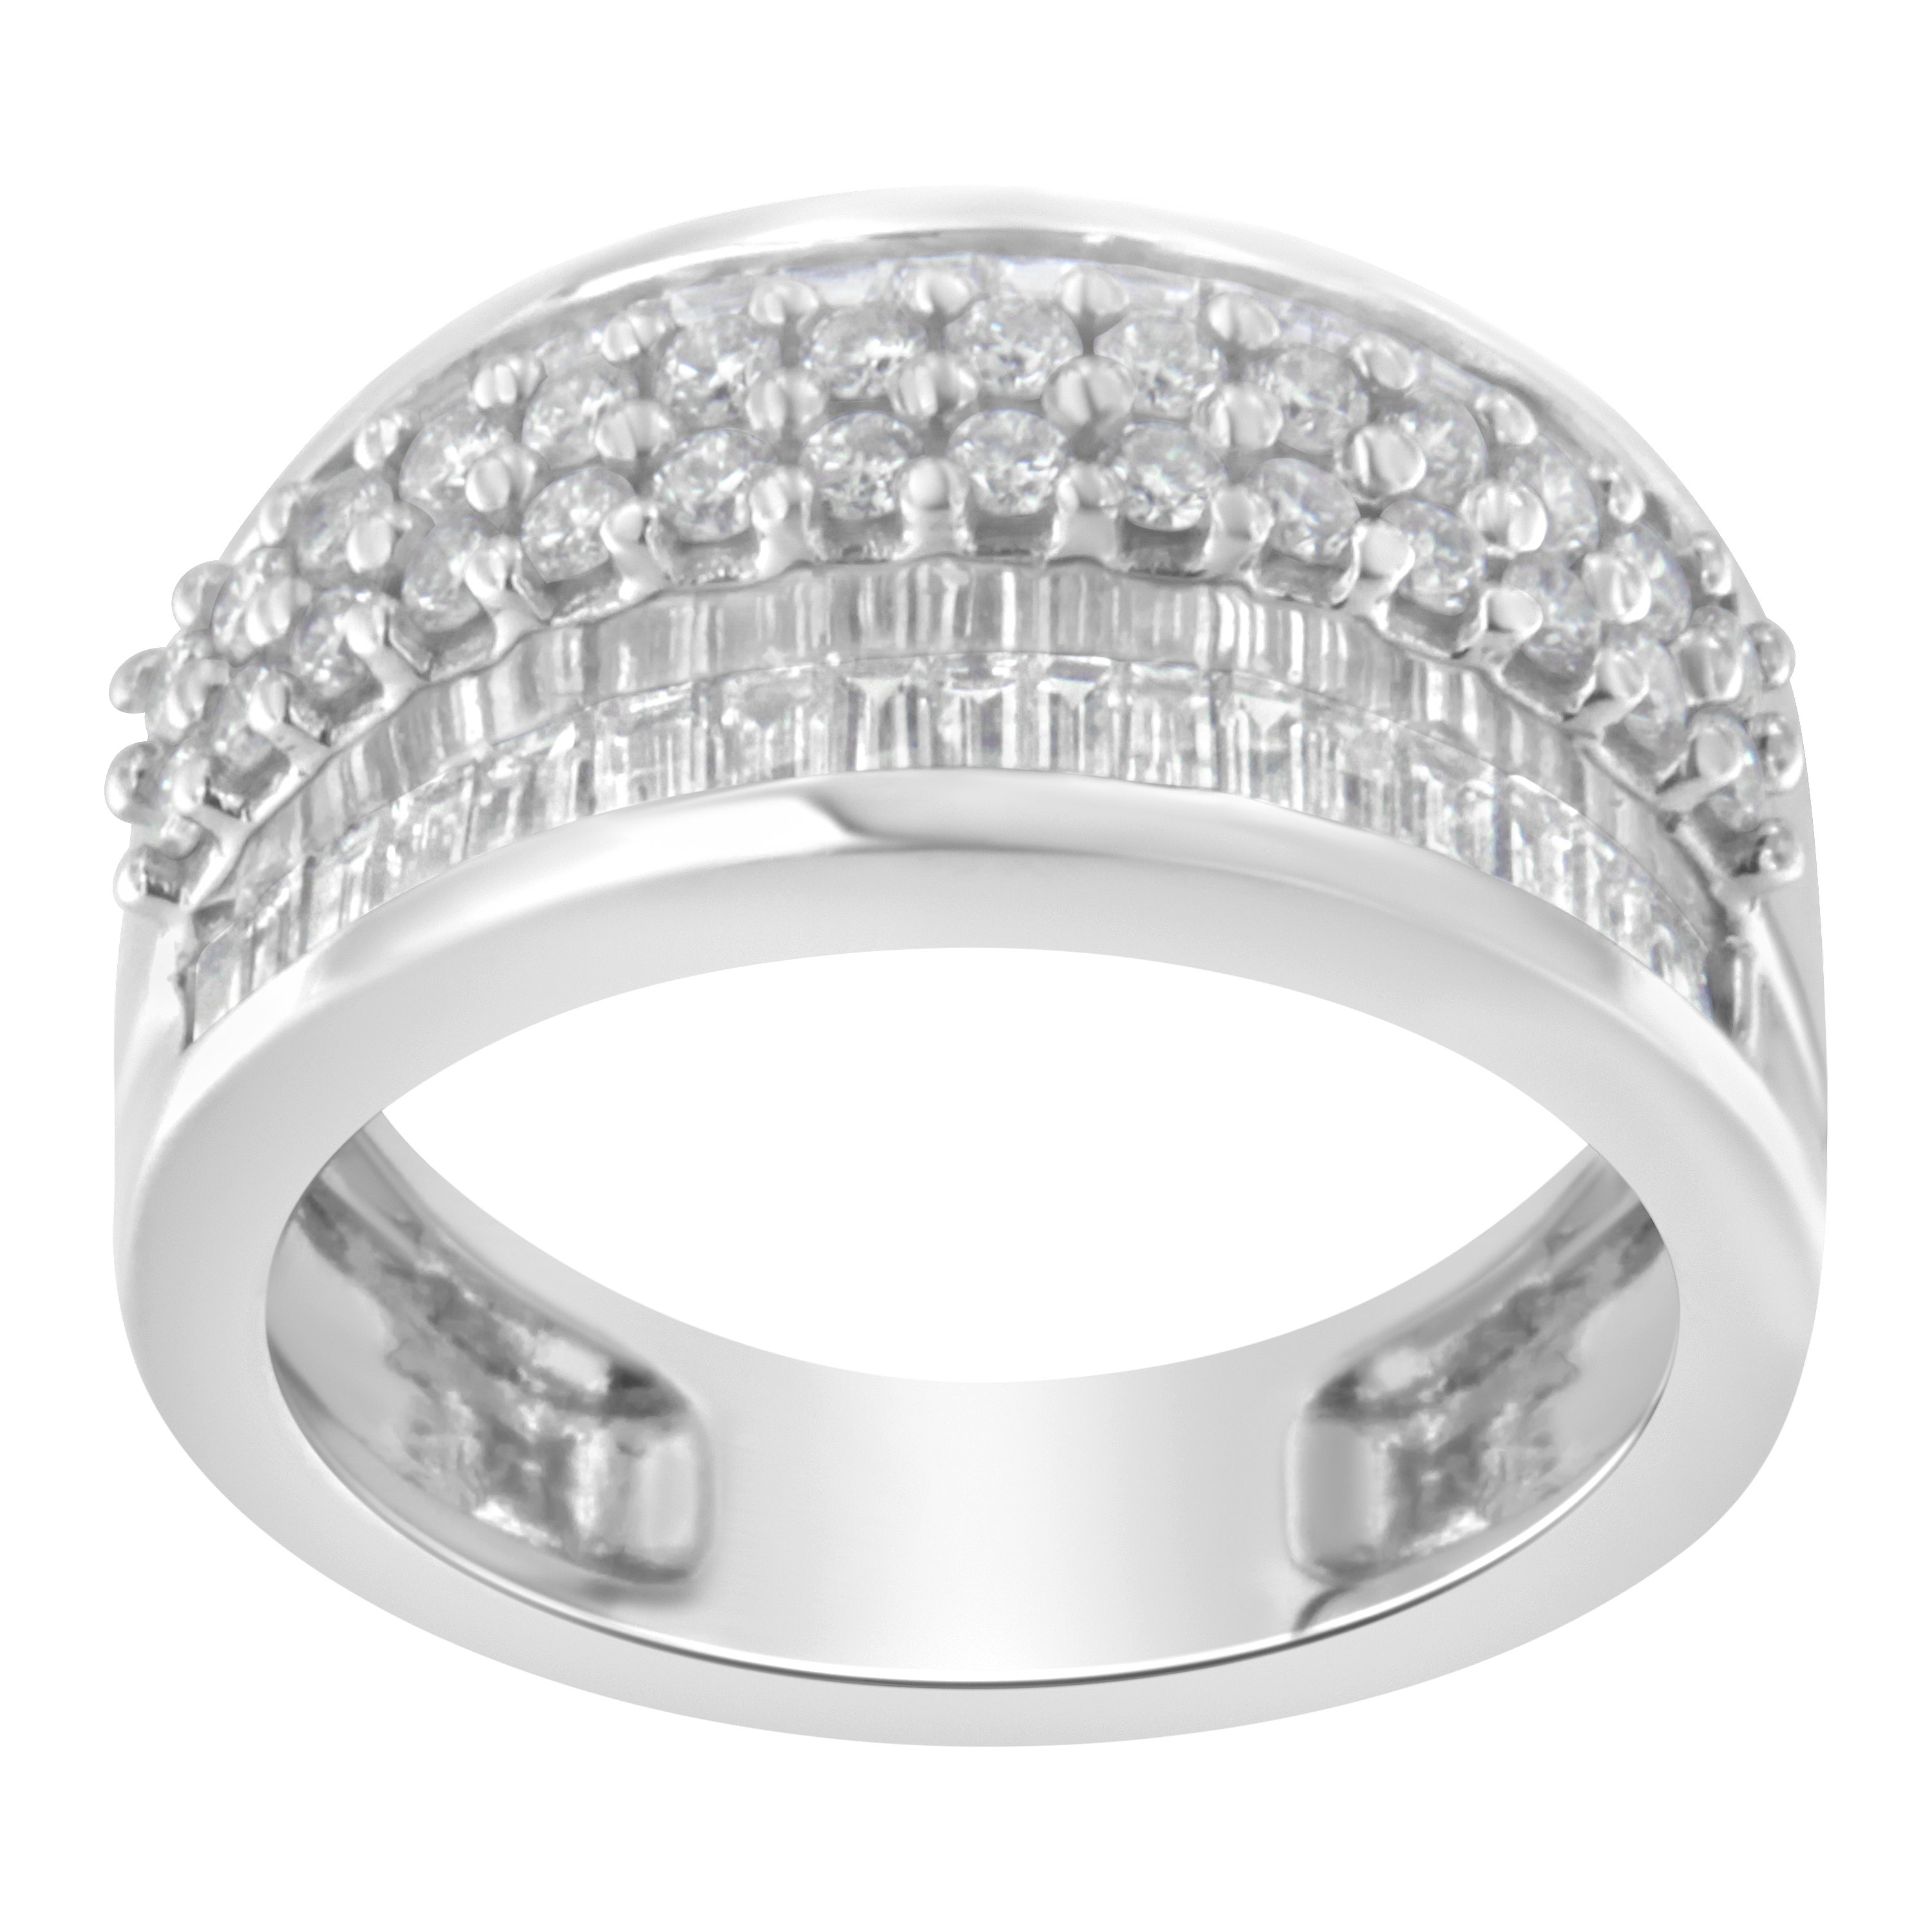 14K White Gold 1 ½ Carat Round and Baguette Diamond Multi-Row Wide Band Ring